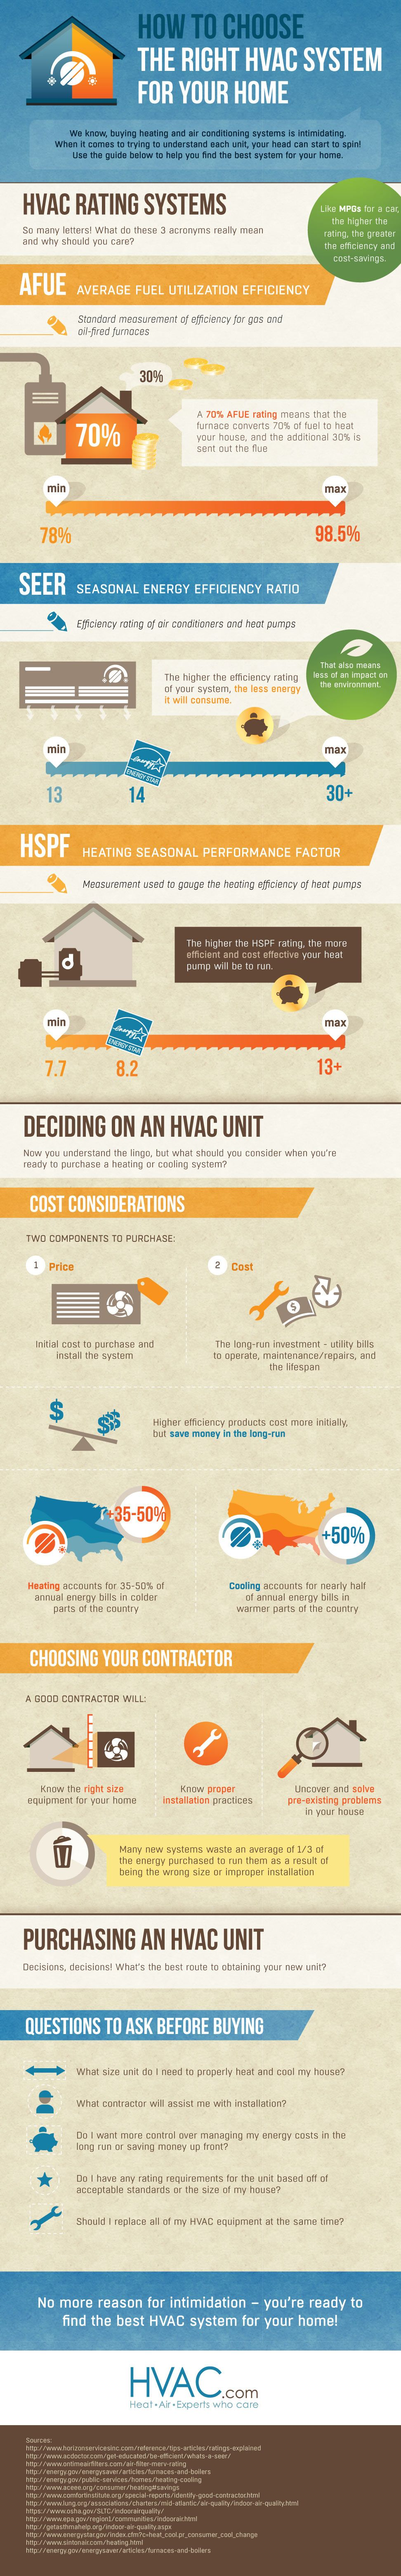 Choosing the Right HVAC System For Your Home [INFOGRAPHIC